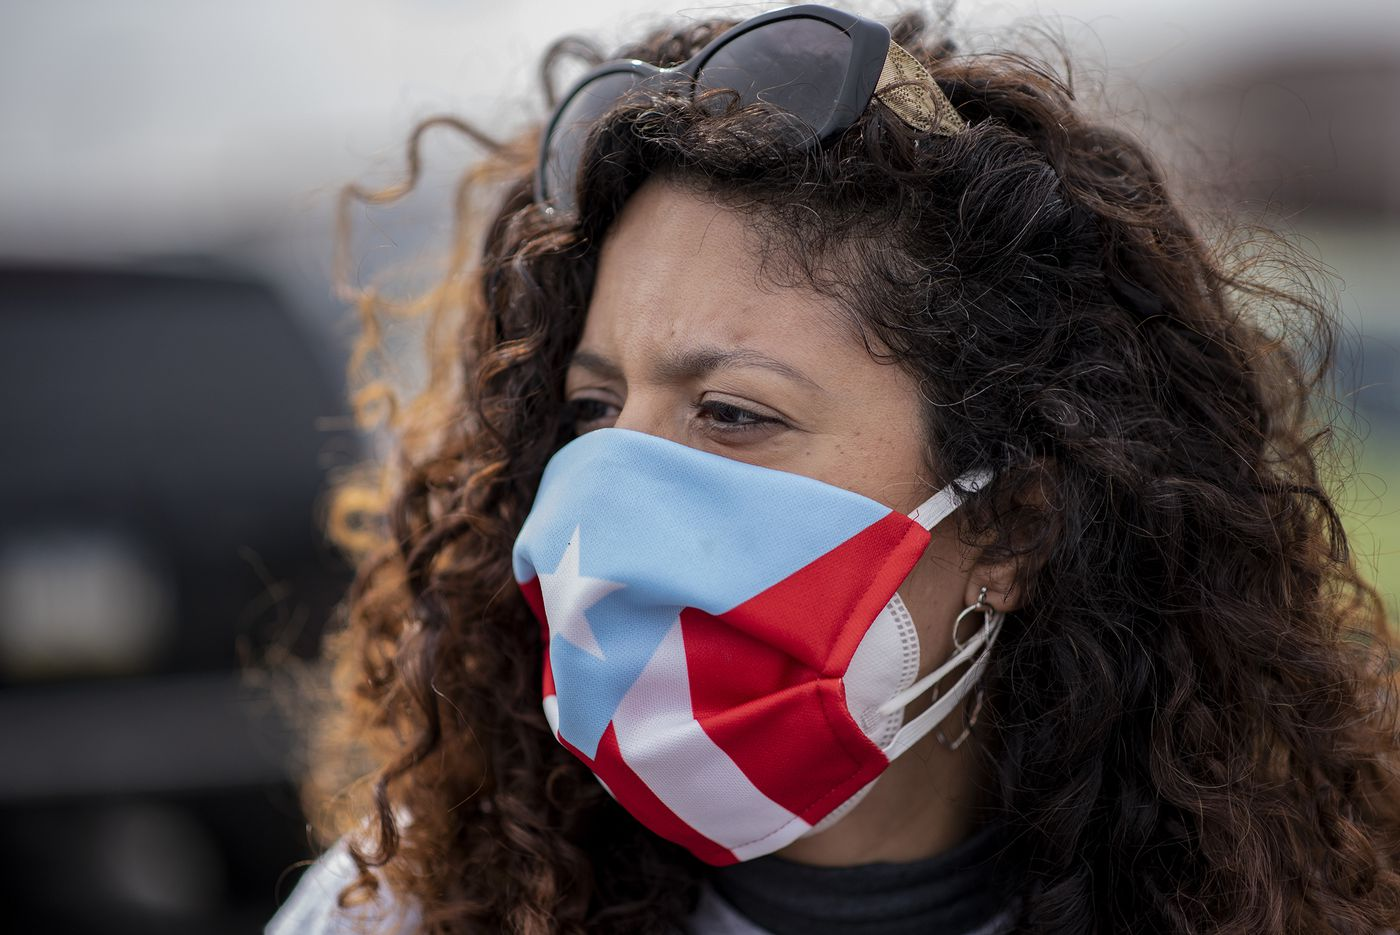 Erica Gonzalez, of Power with Puerto Rico, at a get-out-the-vote event in Philadelphia.